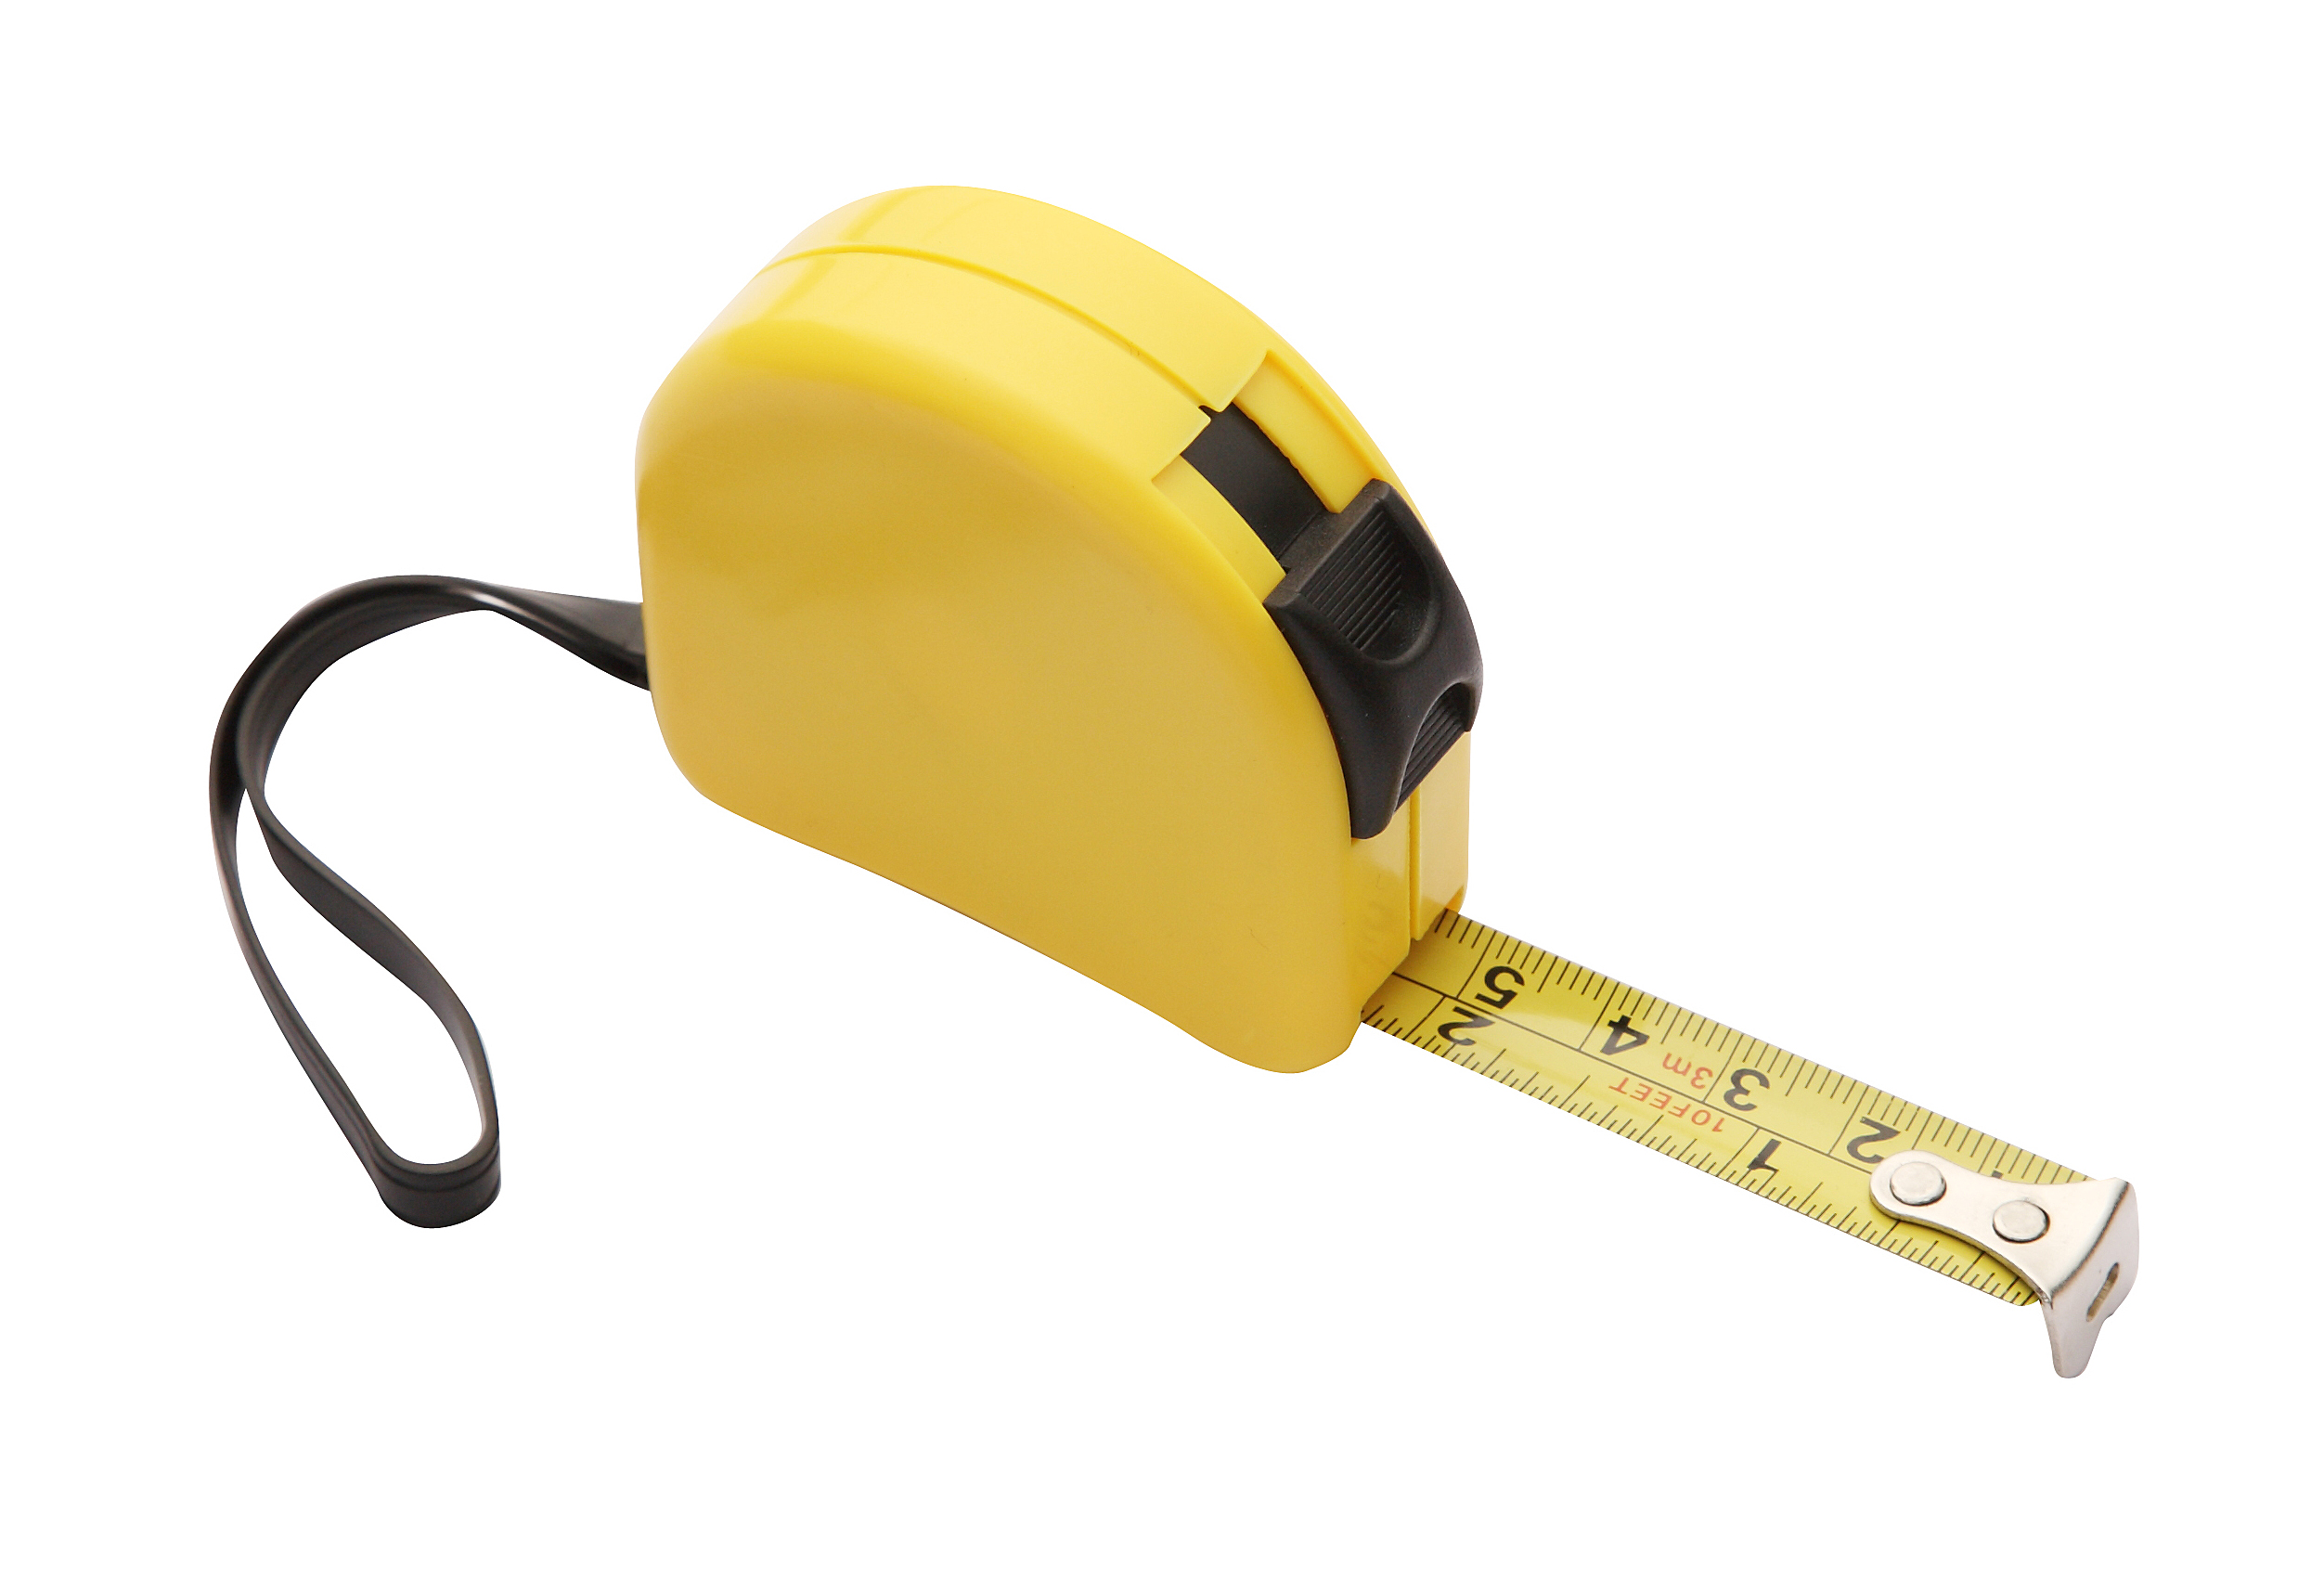 Husky 3M Tape Measure Yellow/Black